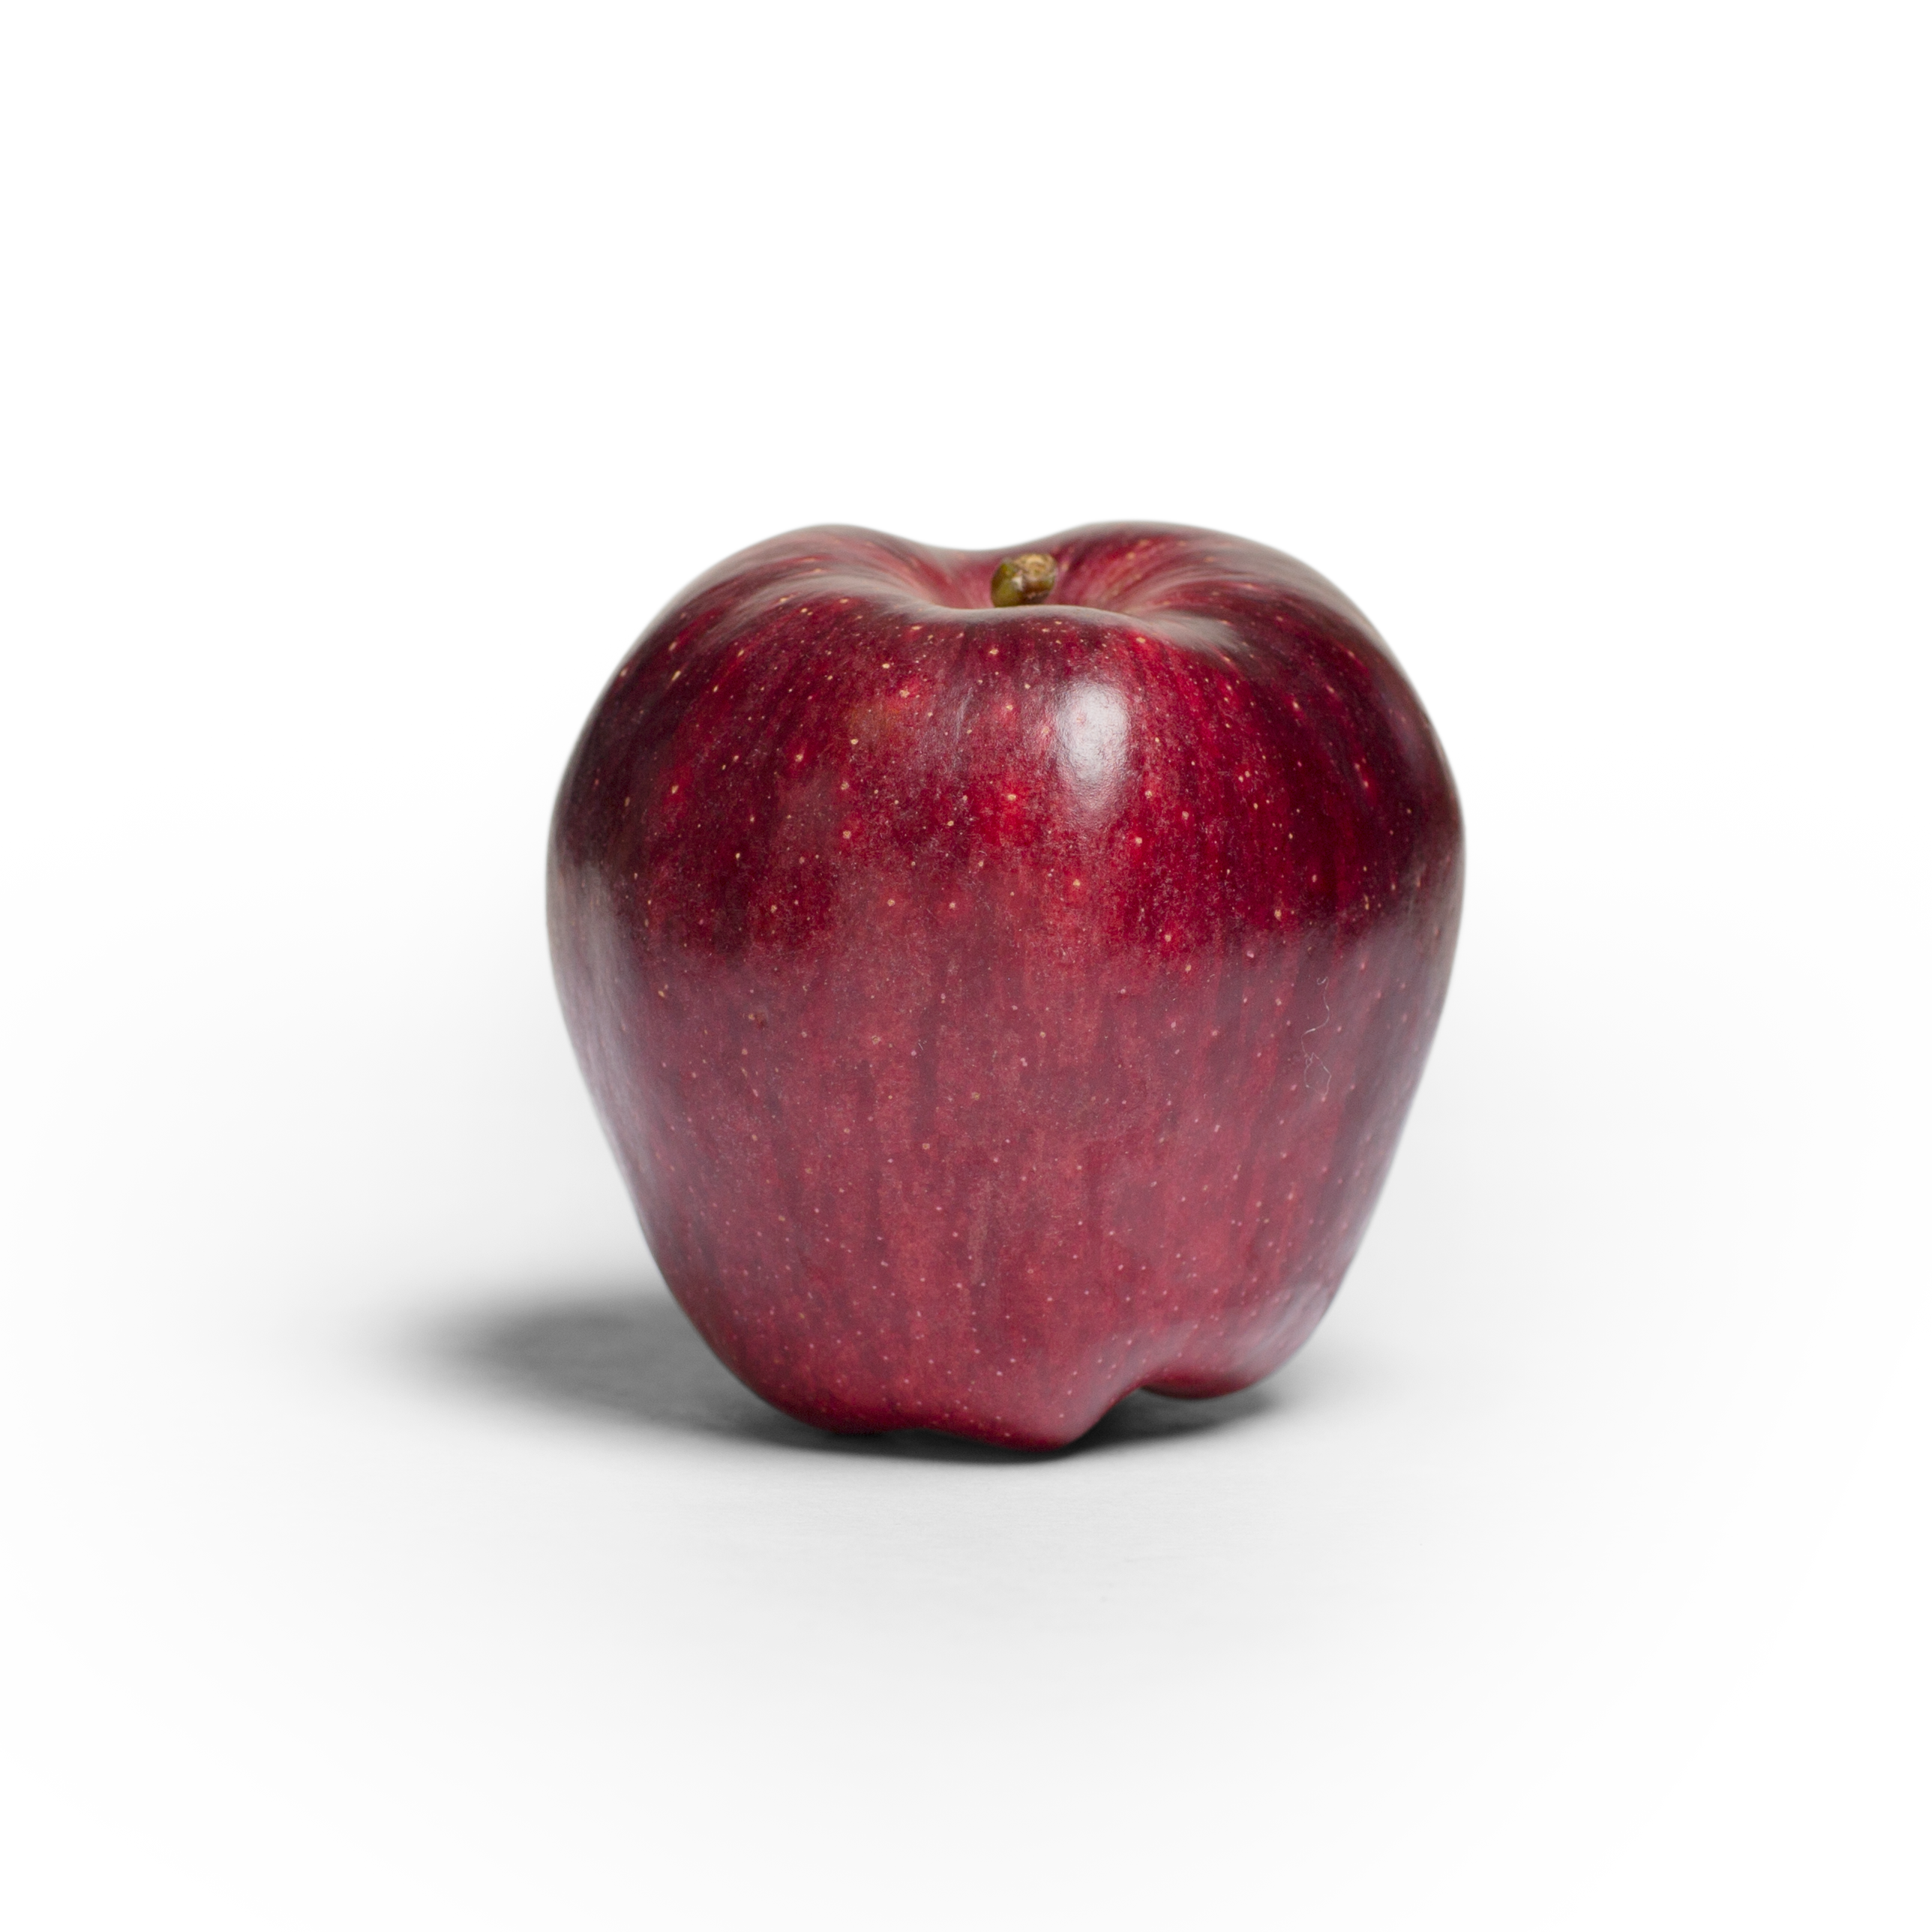 Red Delicious Image